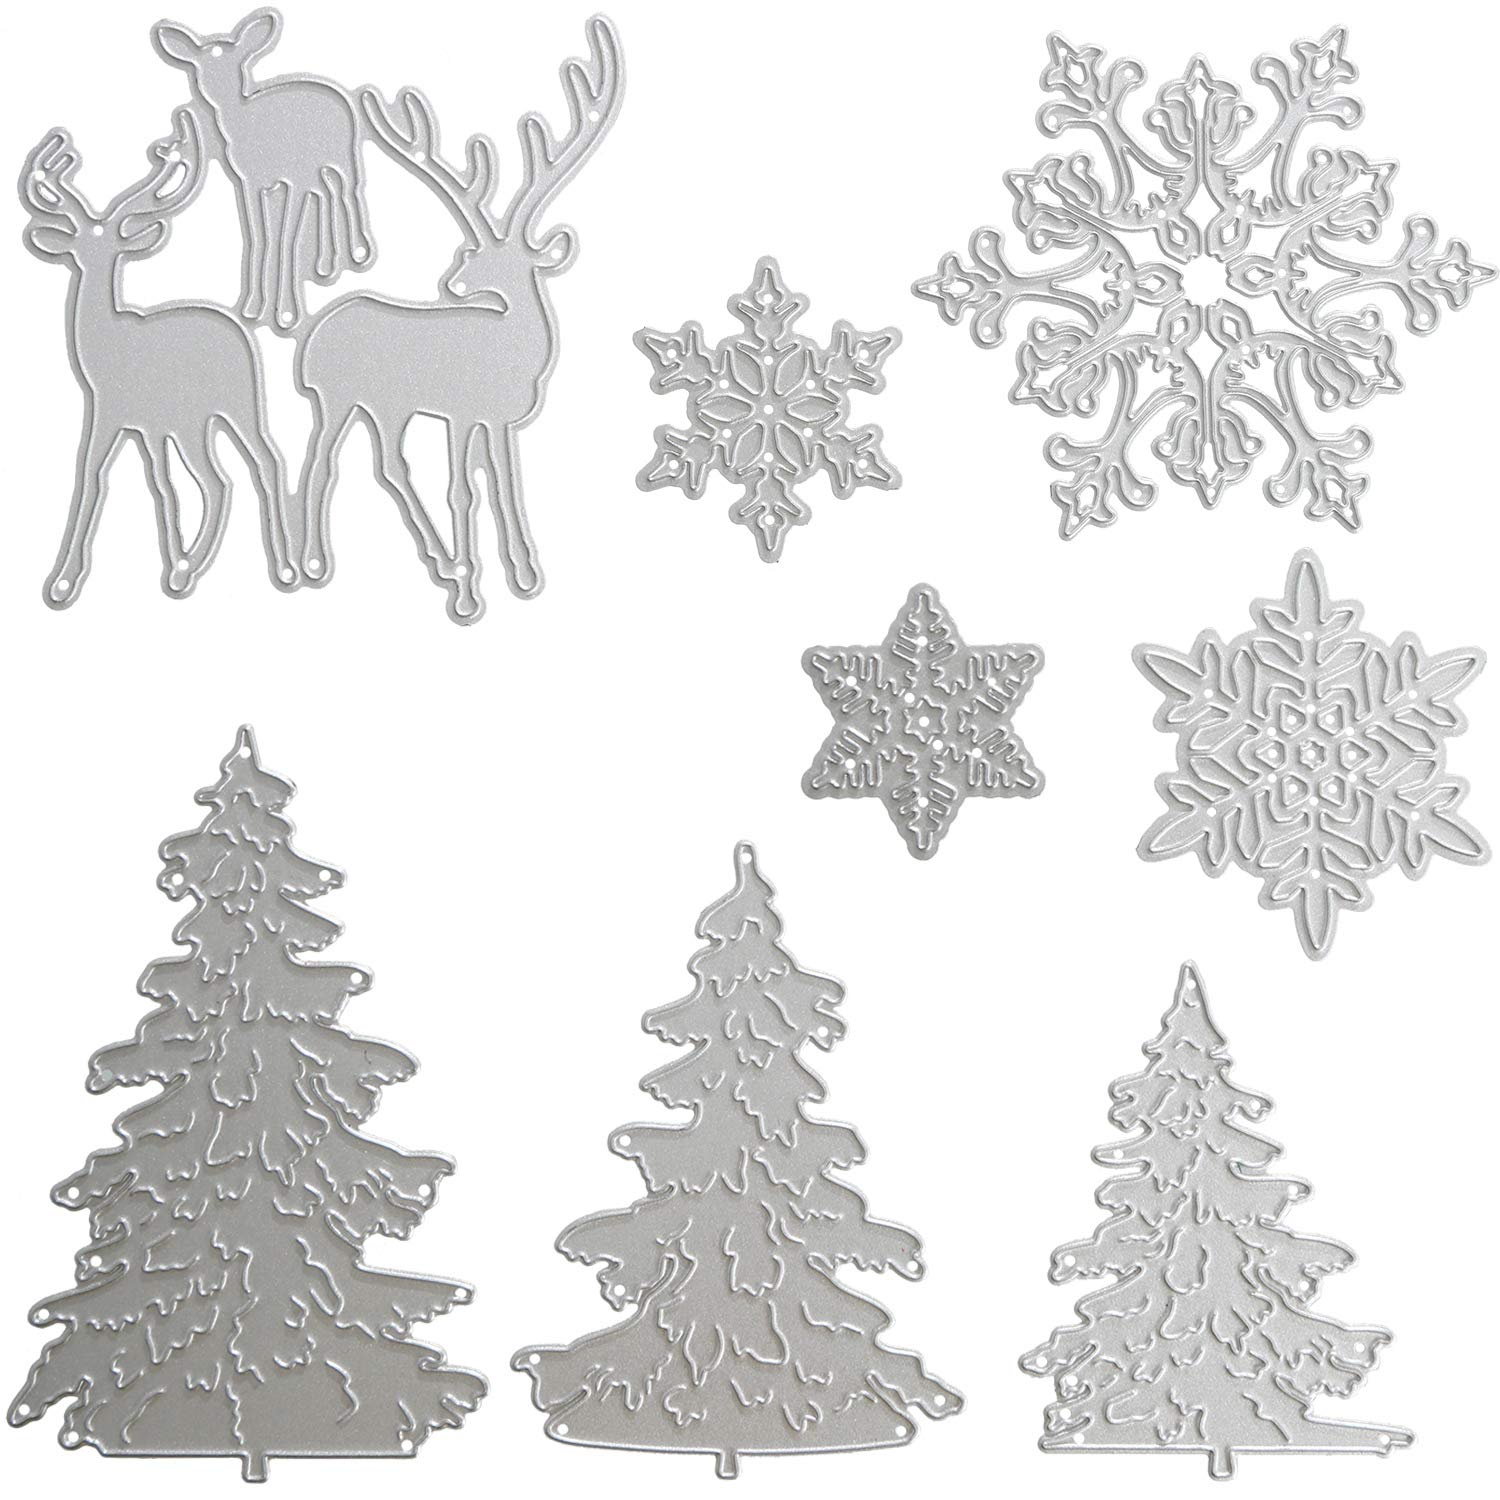 Pangda 8 Pieces Christmas Metallic Cutting Dies Embossing Dies Stencil, Include Snowflake, Christmas Tree Reindeer Metal Mould DIY Crafts